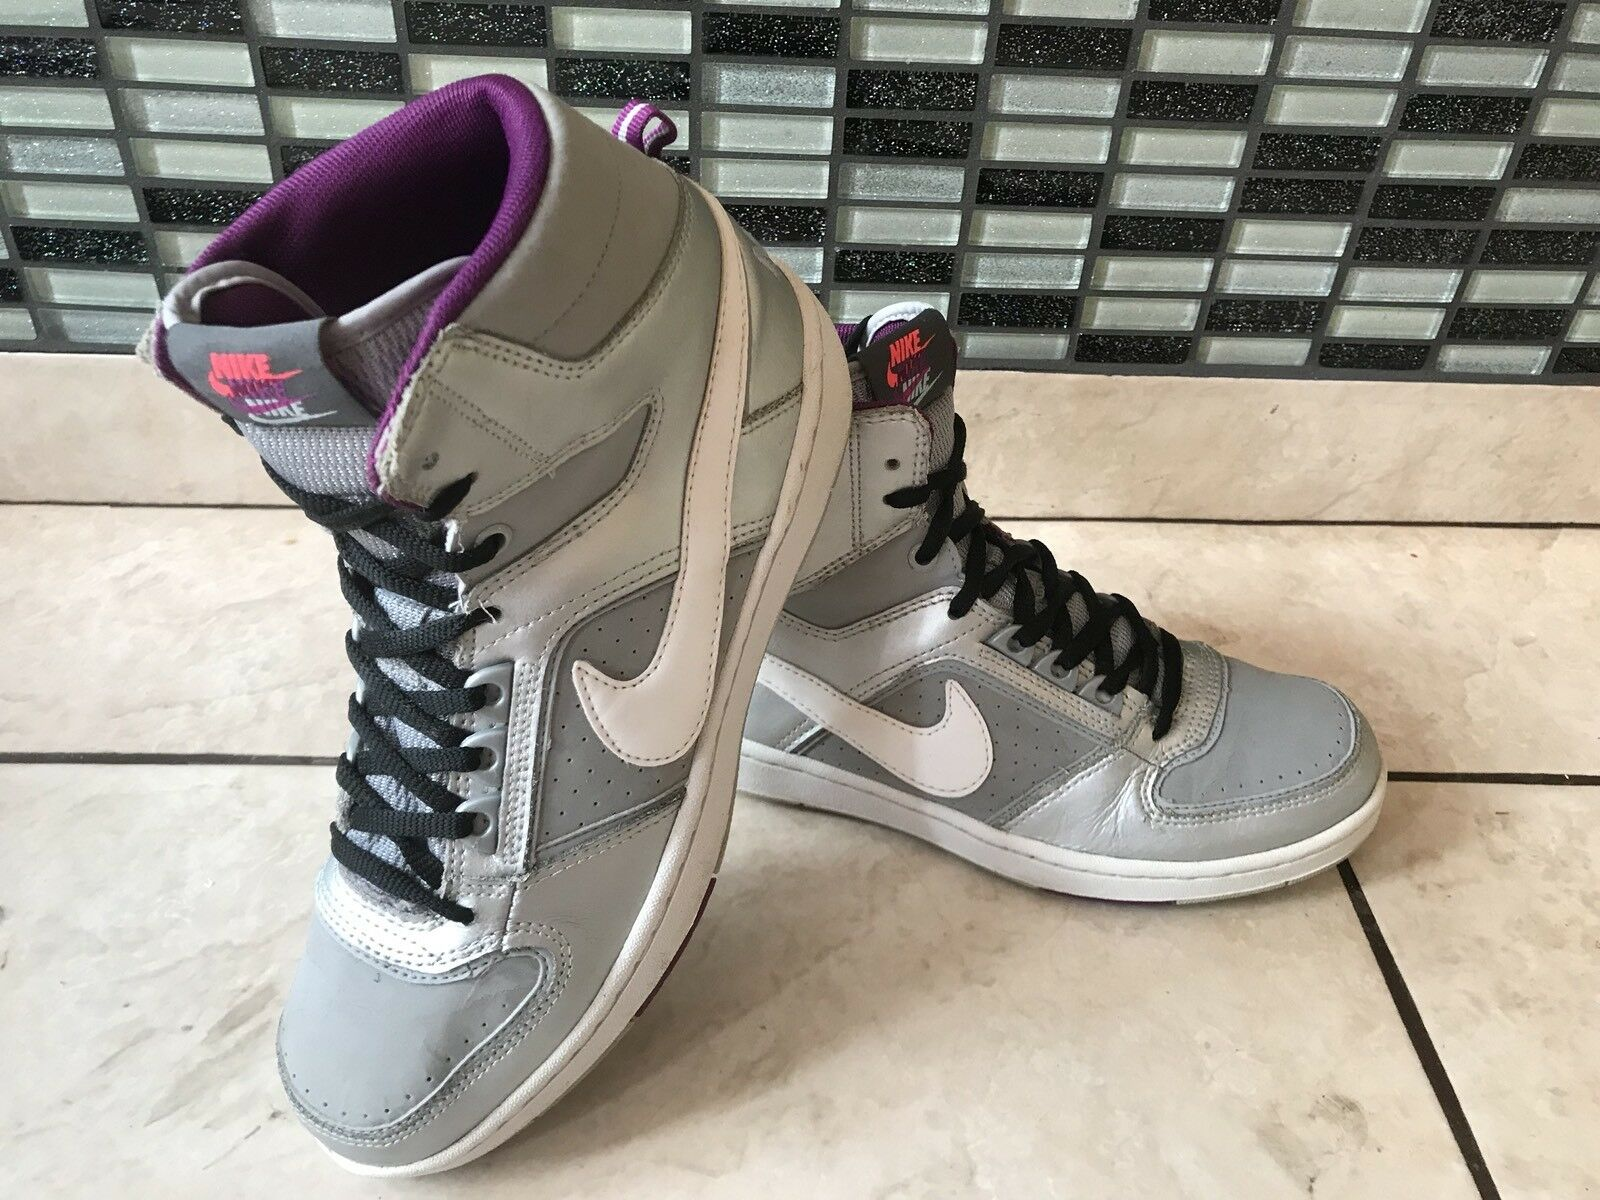 new styles ad370 f989f NEW IN BOX BOX BOX WOMENS NIKE REVOLUTION 3 RUNNING SHOES SNEAKERS SIZE 6  17e964